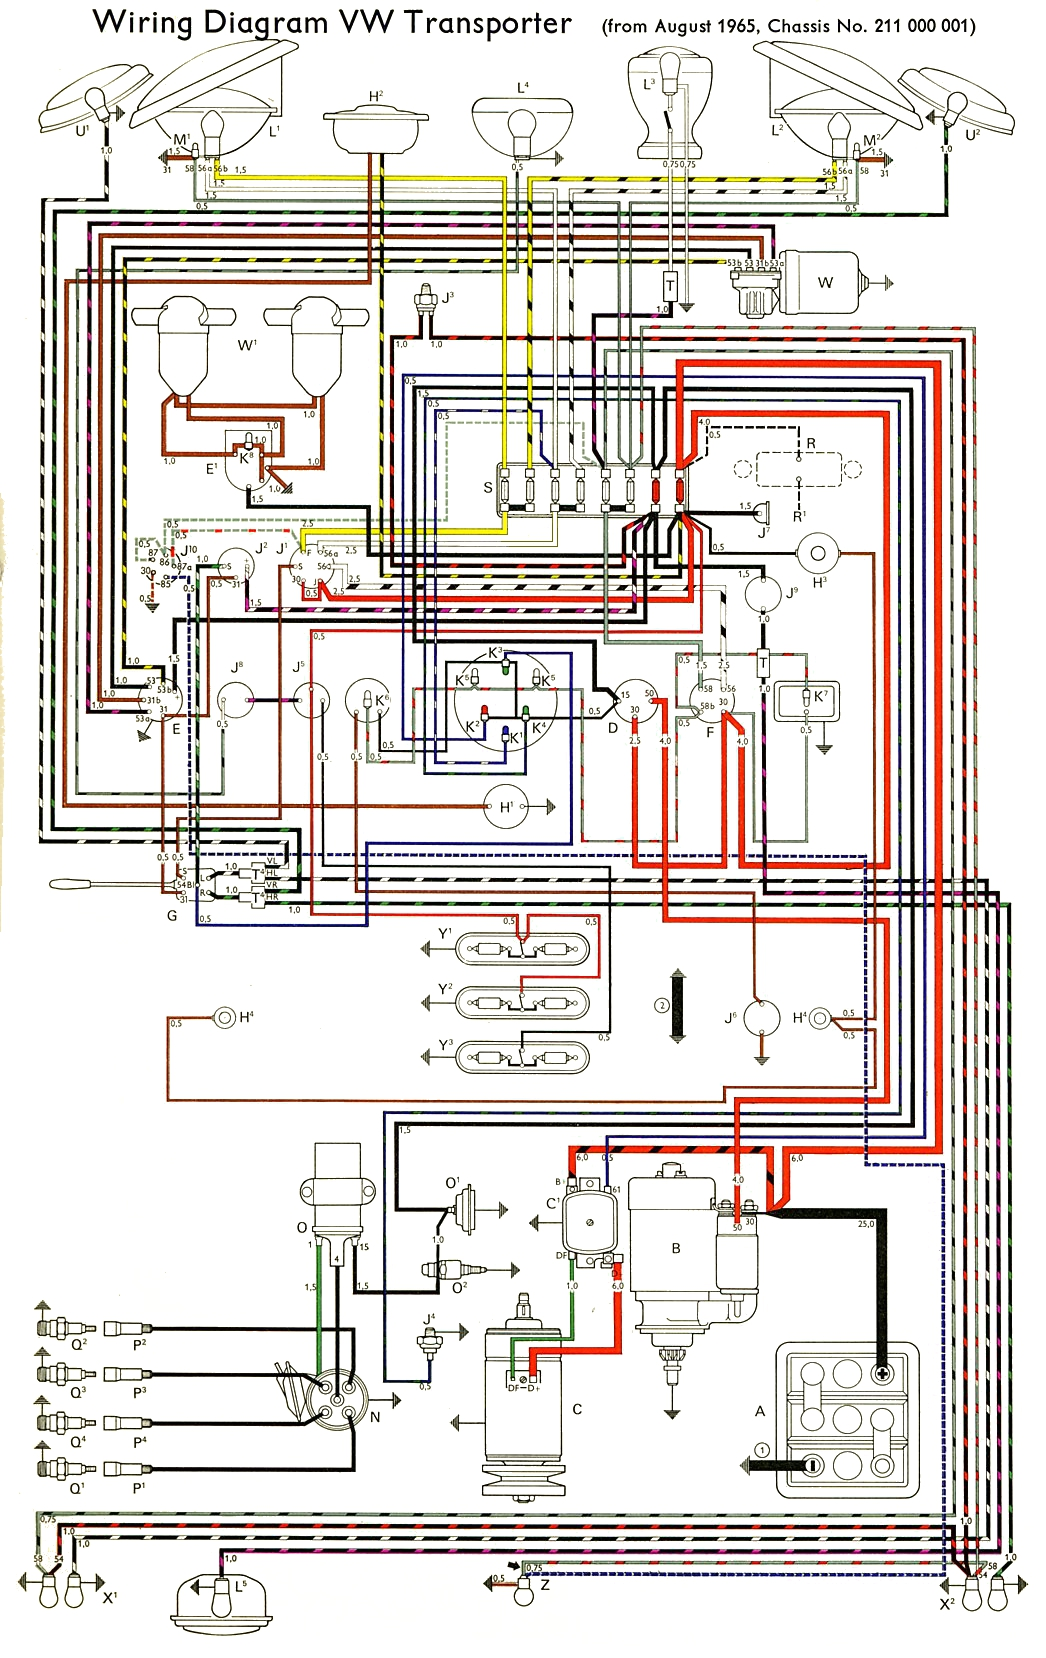 1993 Eurovan Wiring Diagram Tail Lights - 02 Mazda Tribute Wiring Diagram -  toyota-tps.yenpancane.jeanjaures37.fr | 1993 Eurovan Wiring Diagram Tail Lights |  | Wiring Diagram Resource